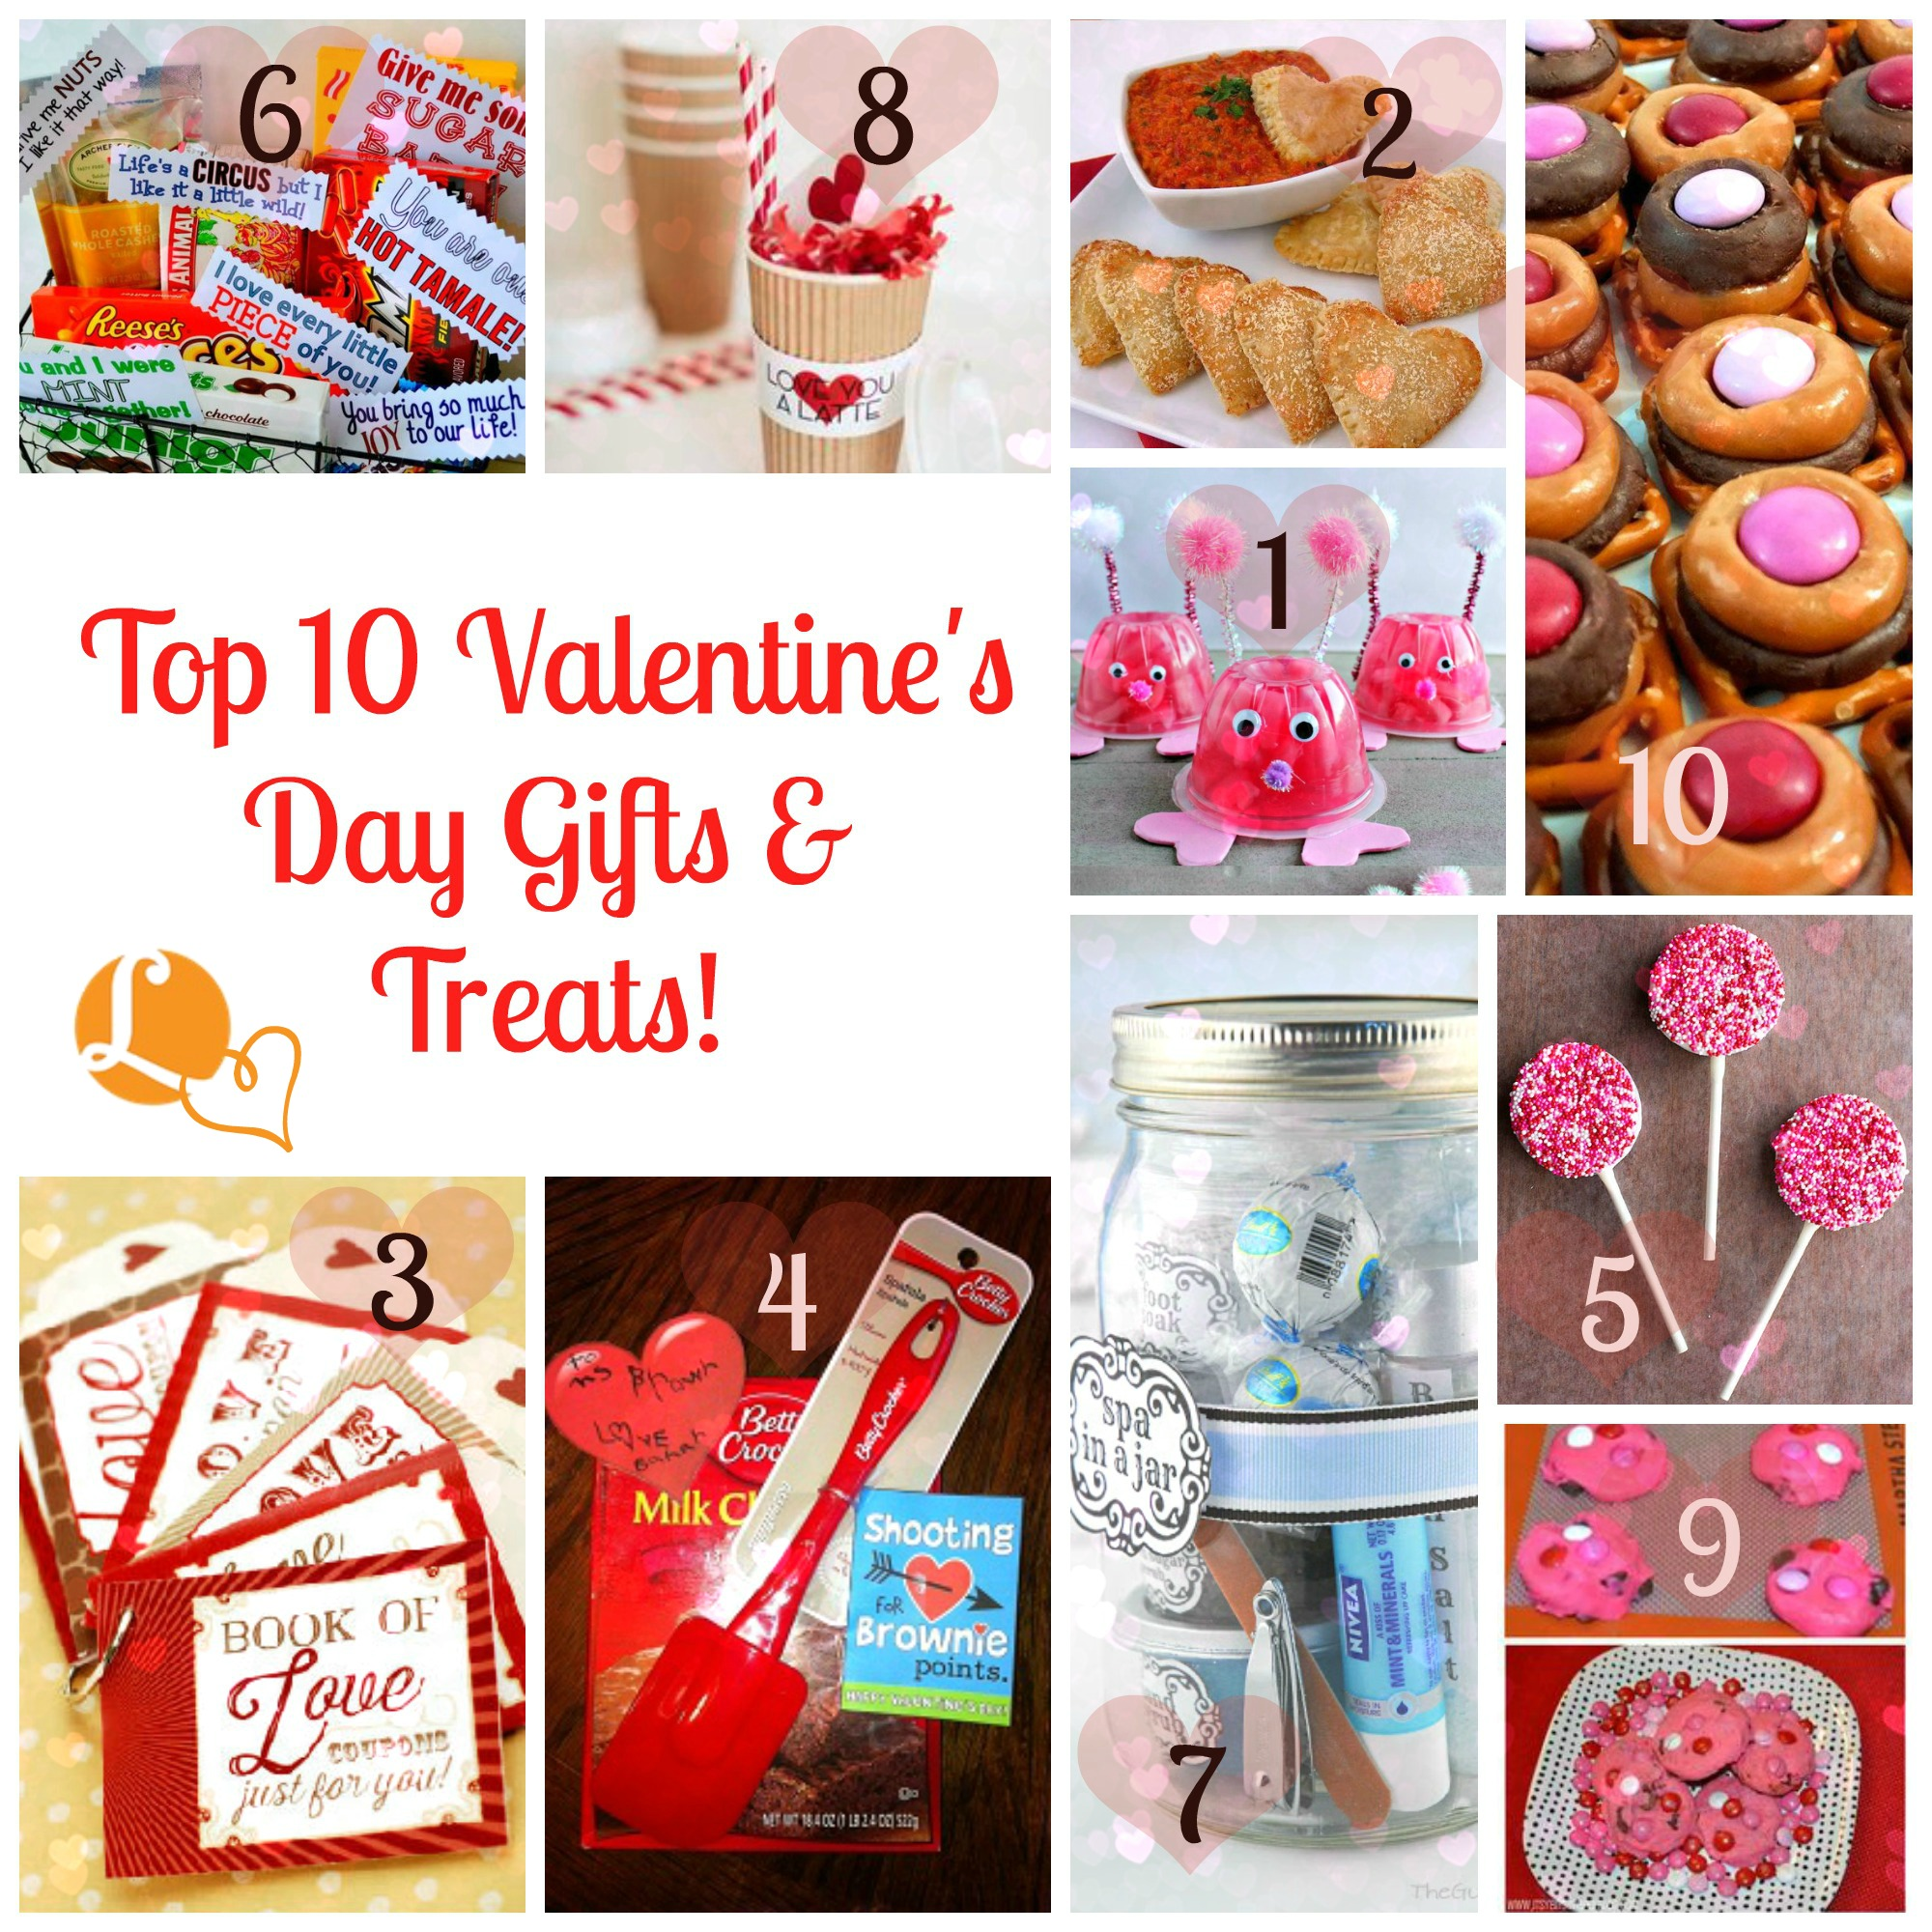 top 10 valentine's day gifts & treats! | living rich with coupons, Ideas